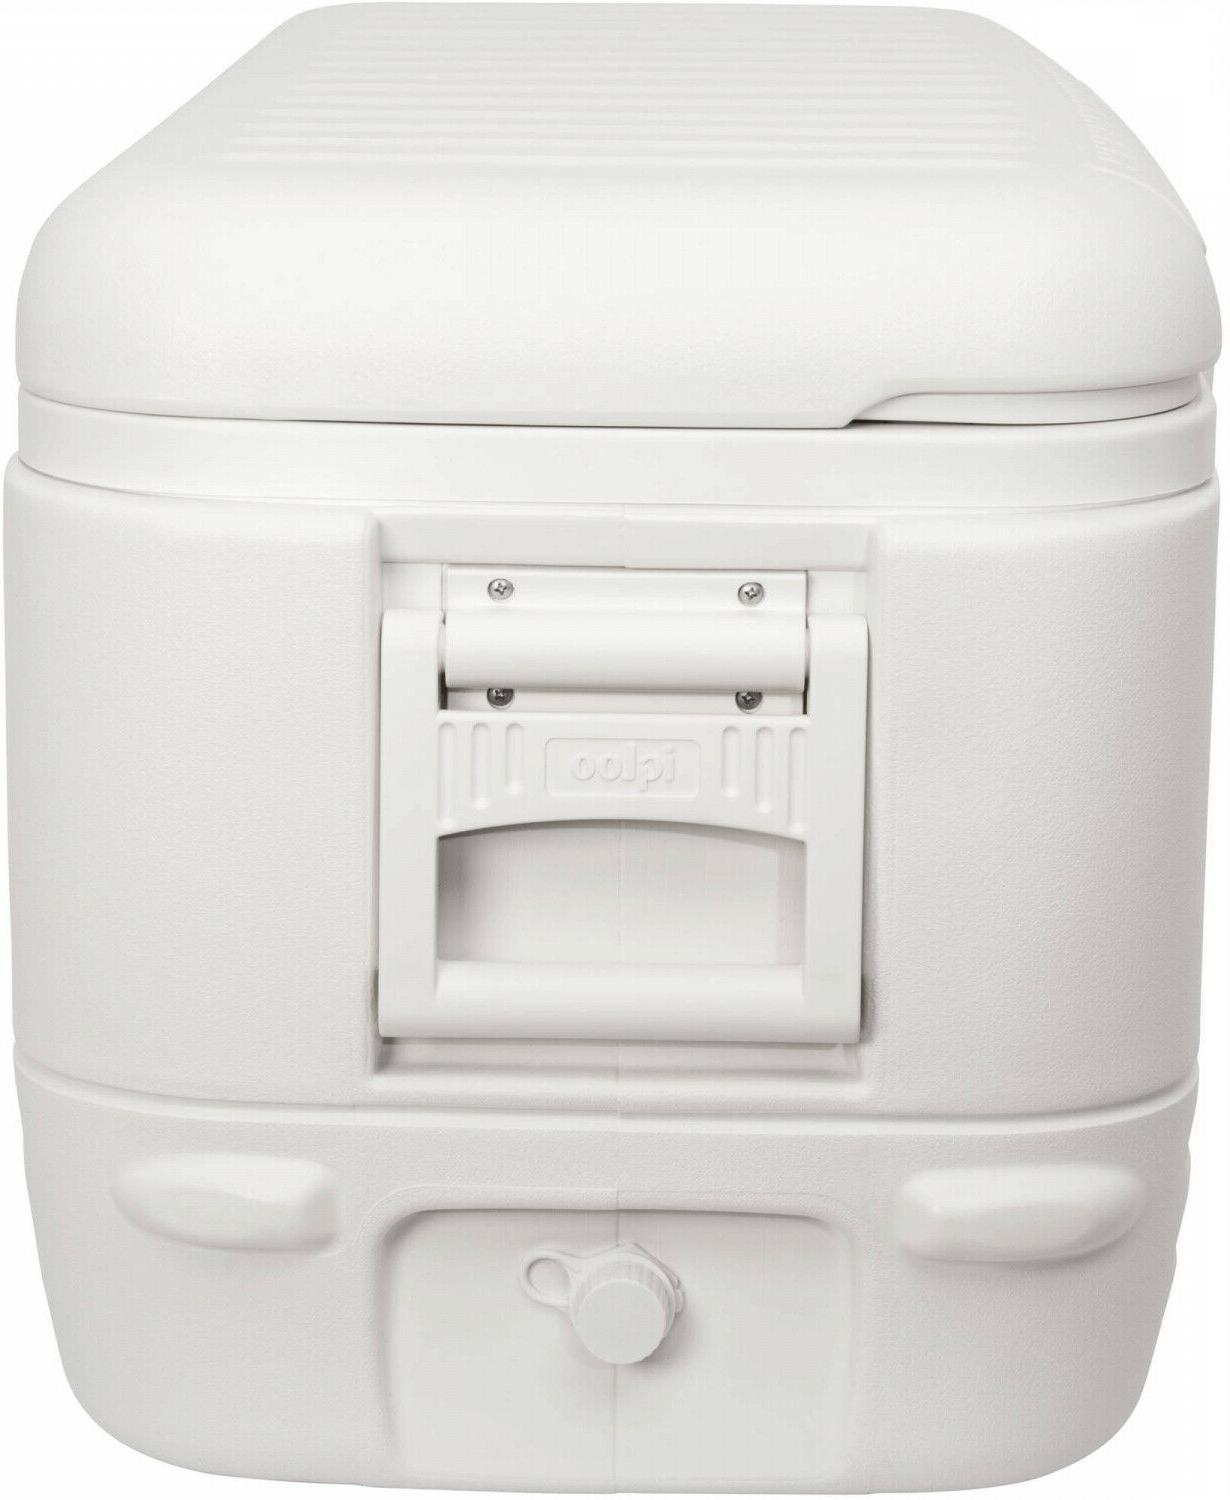 Large Max Cold Ice Chest Insulated Marine White 120qt